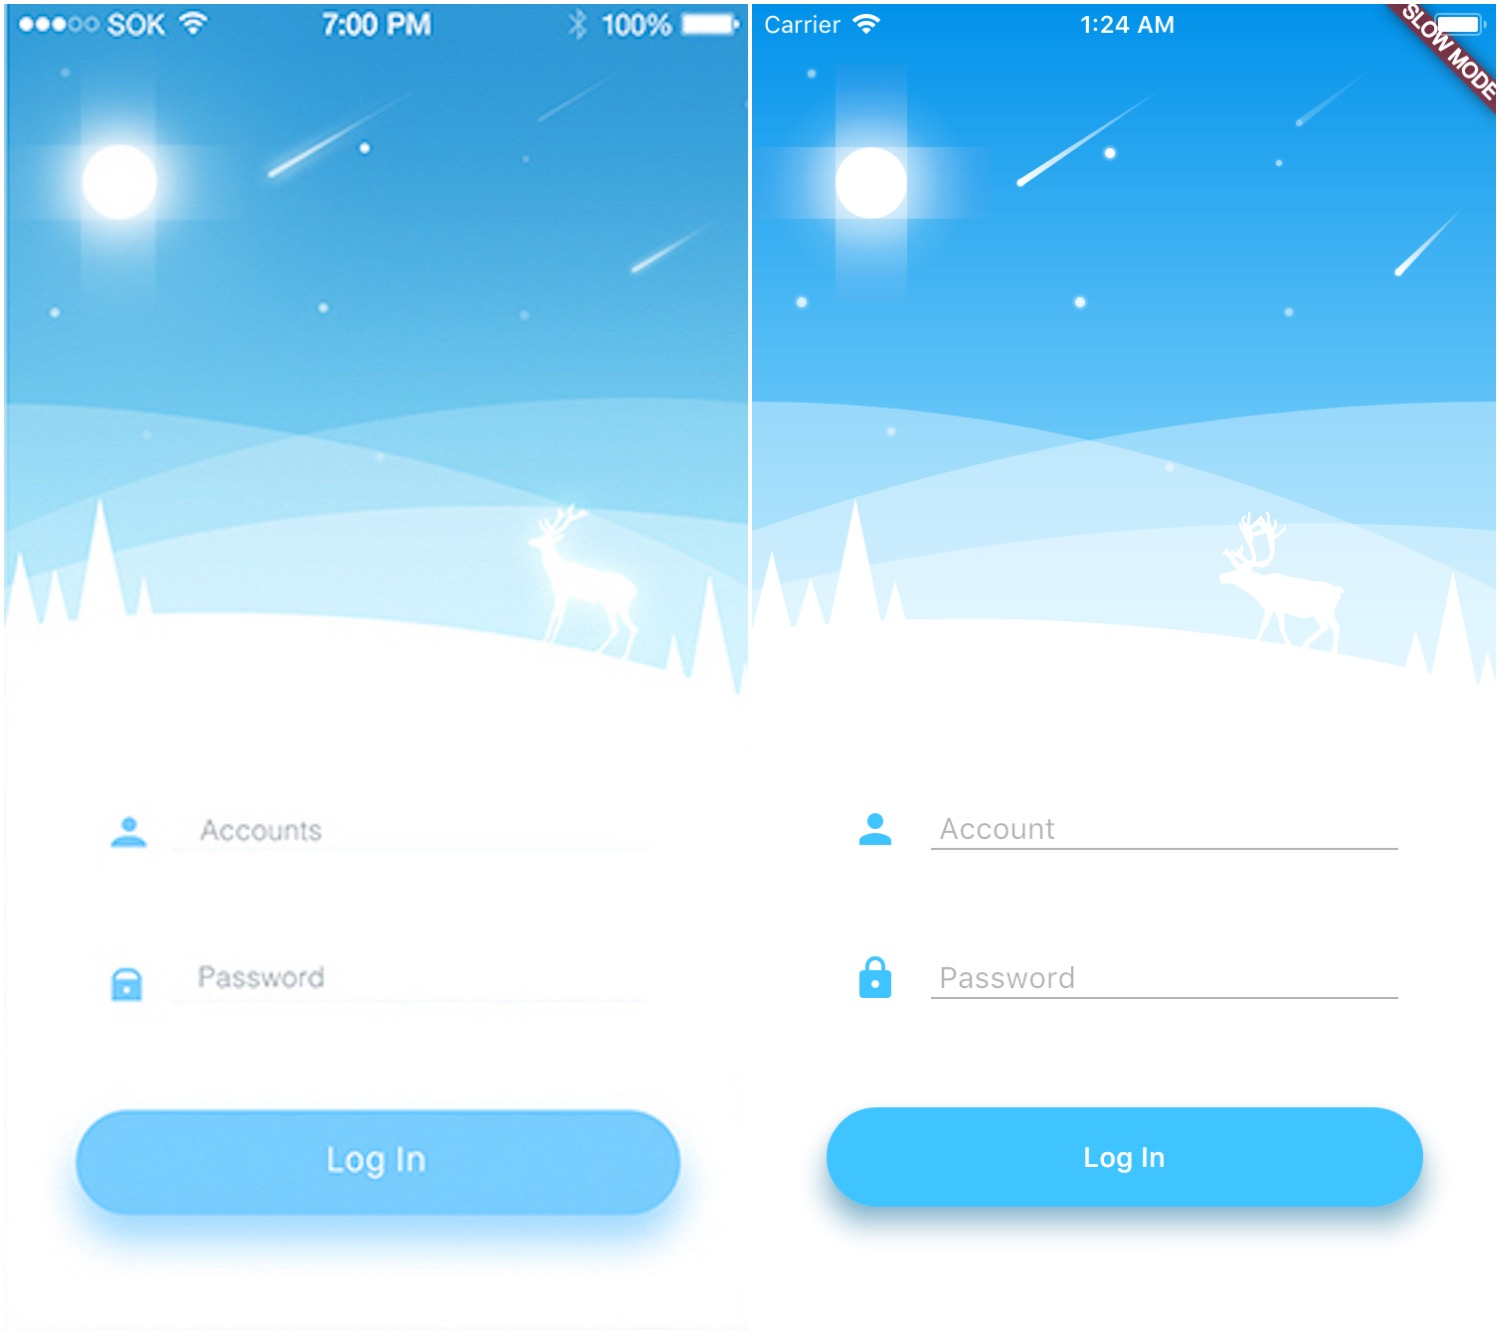 A weather app built to learn how to use Canvas and Animation in Flutter